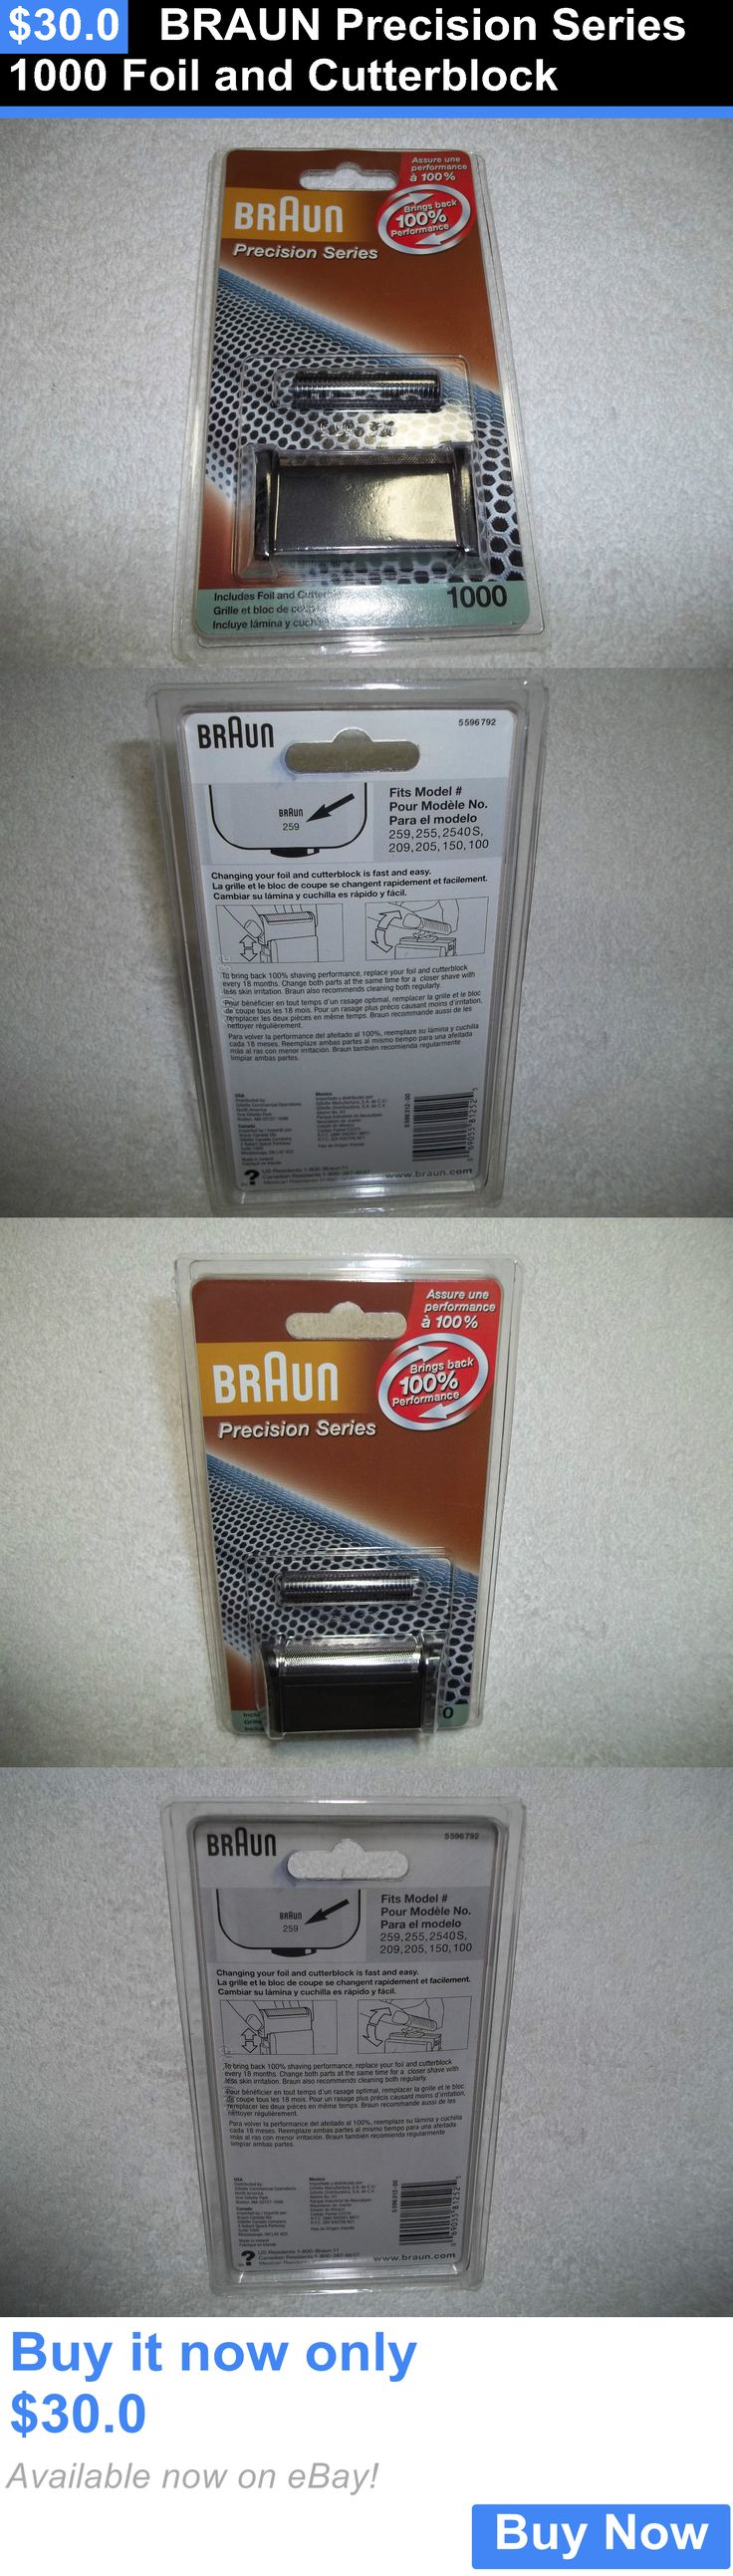 Shaver Parts and Accessories: Braun Precision Series 1000 Foil And Cutterblock BUY IT NOW ONLY: $30.0